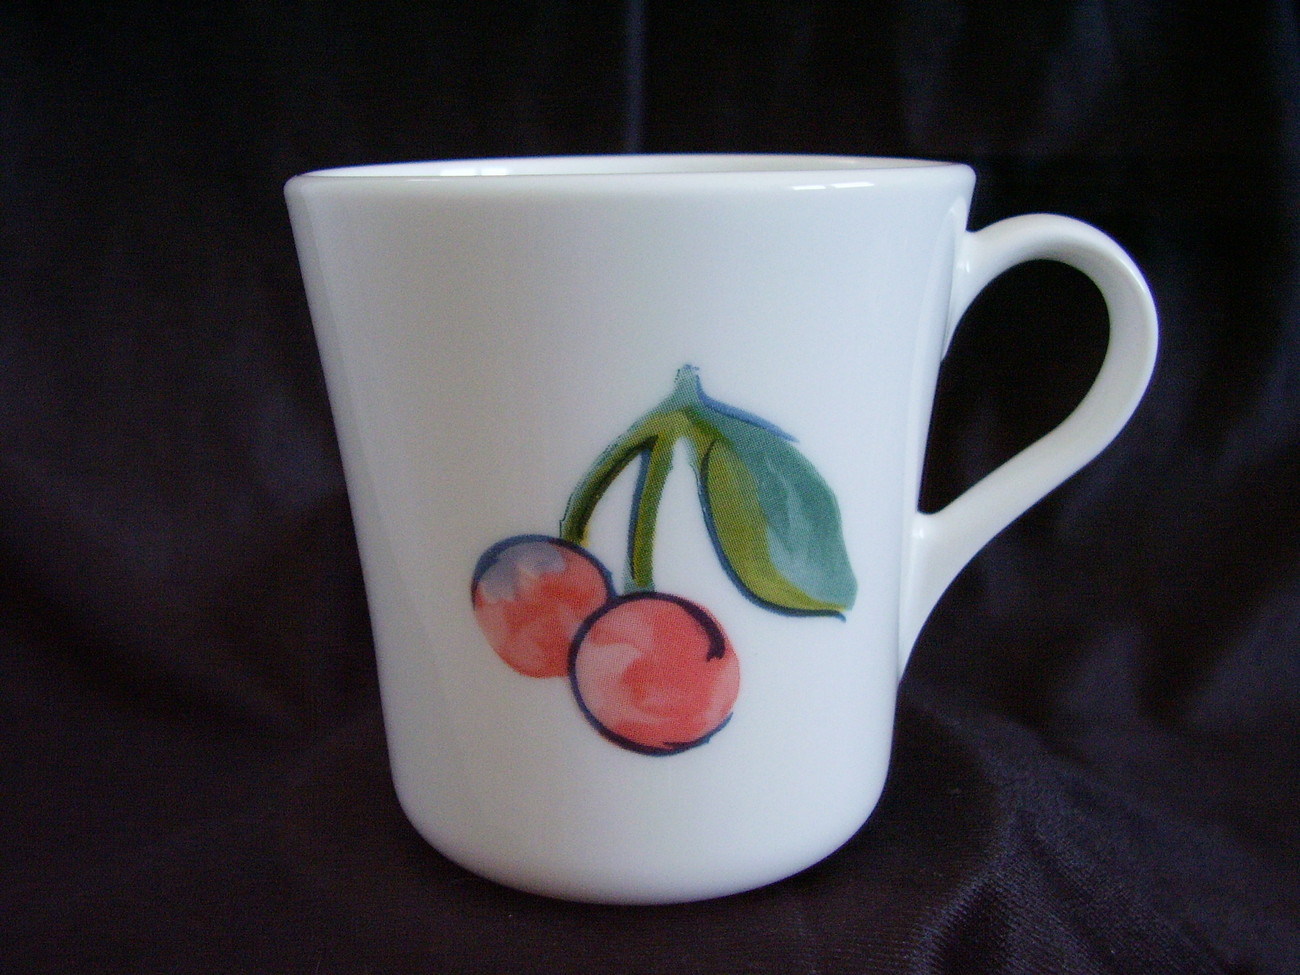 Primary image for Corelle Fruit Too Coffee Cup Mug Cherries Apples